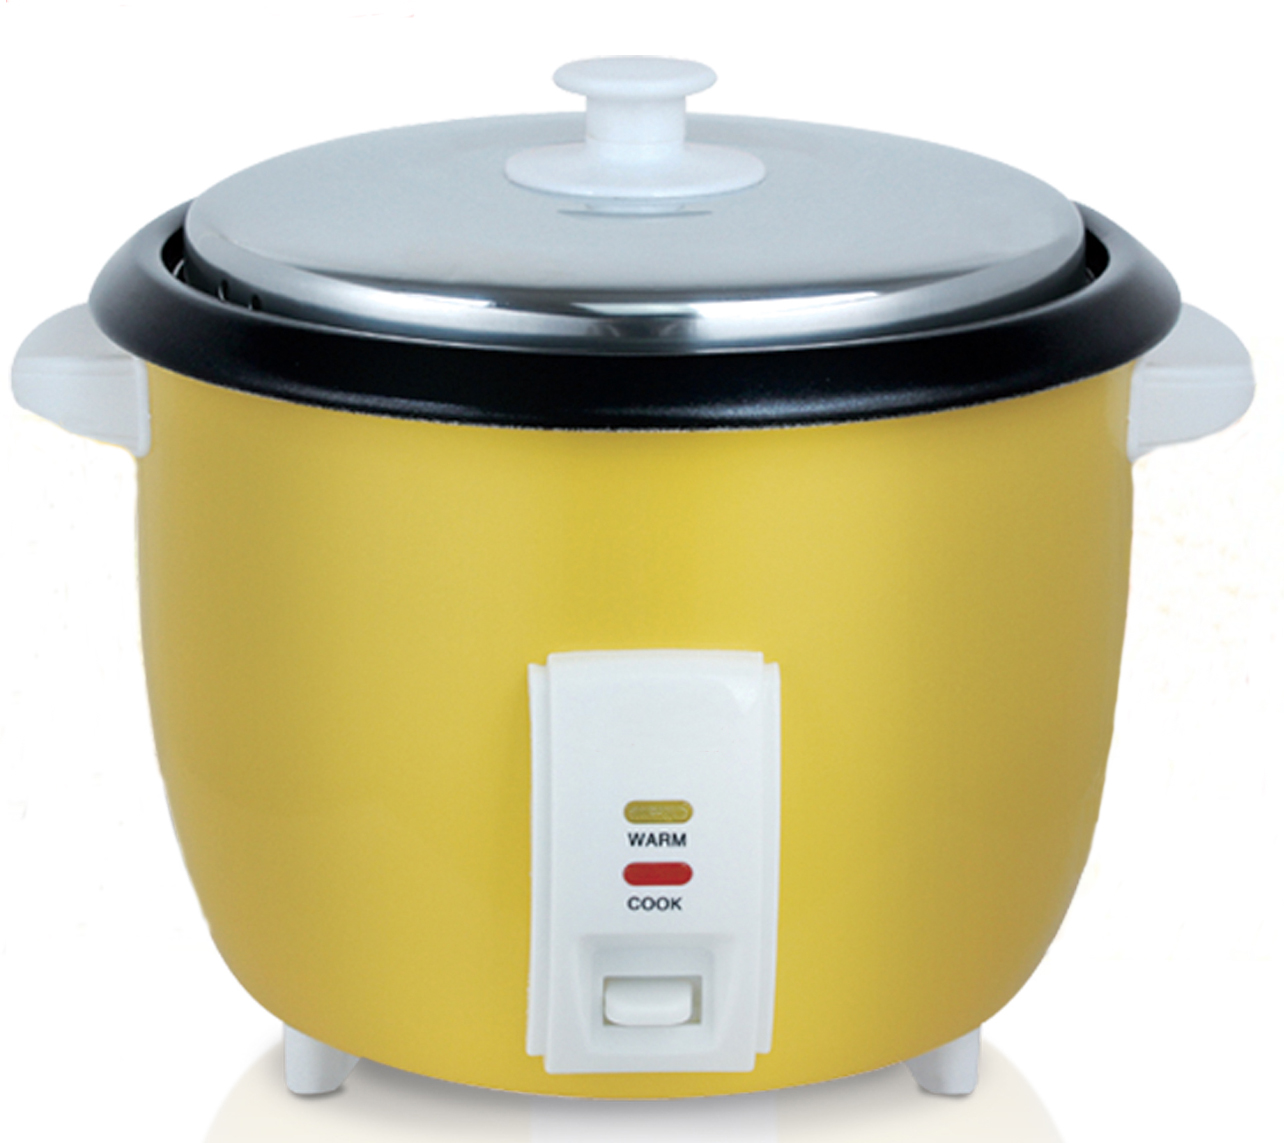 Drum rice cooker TPGB50-01